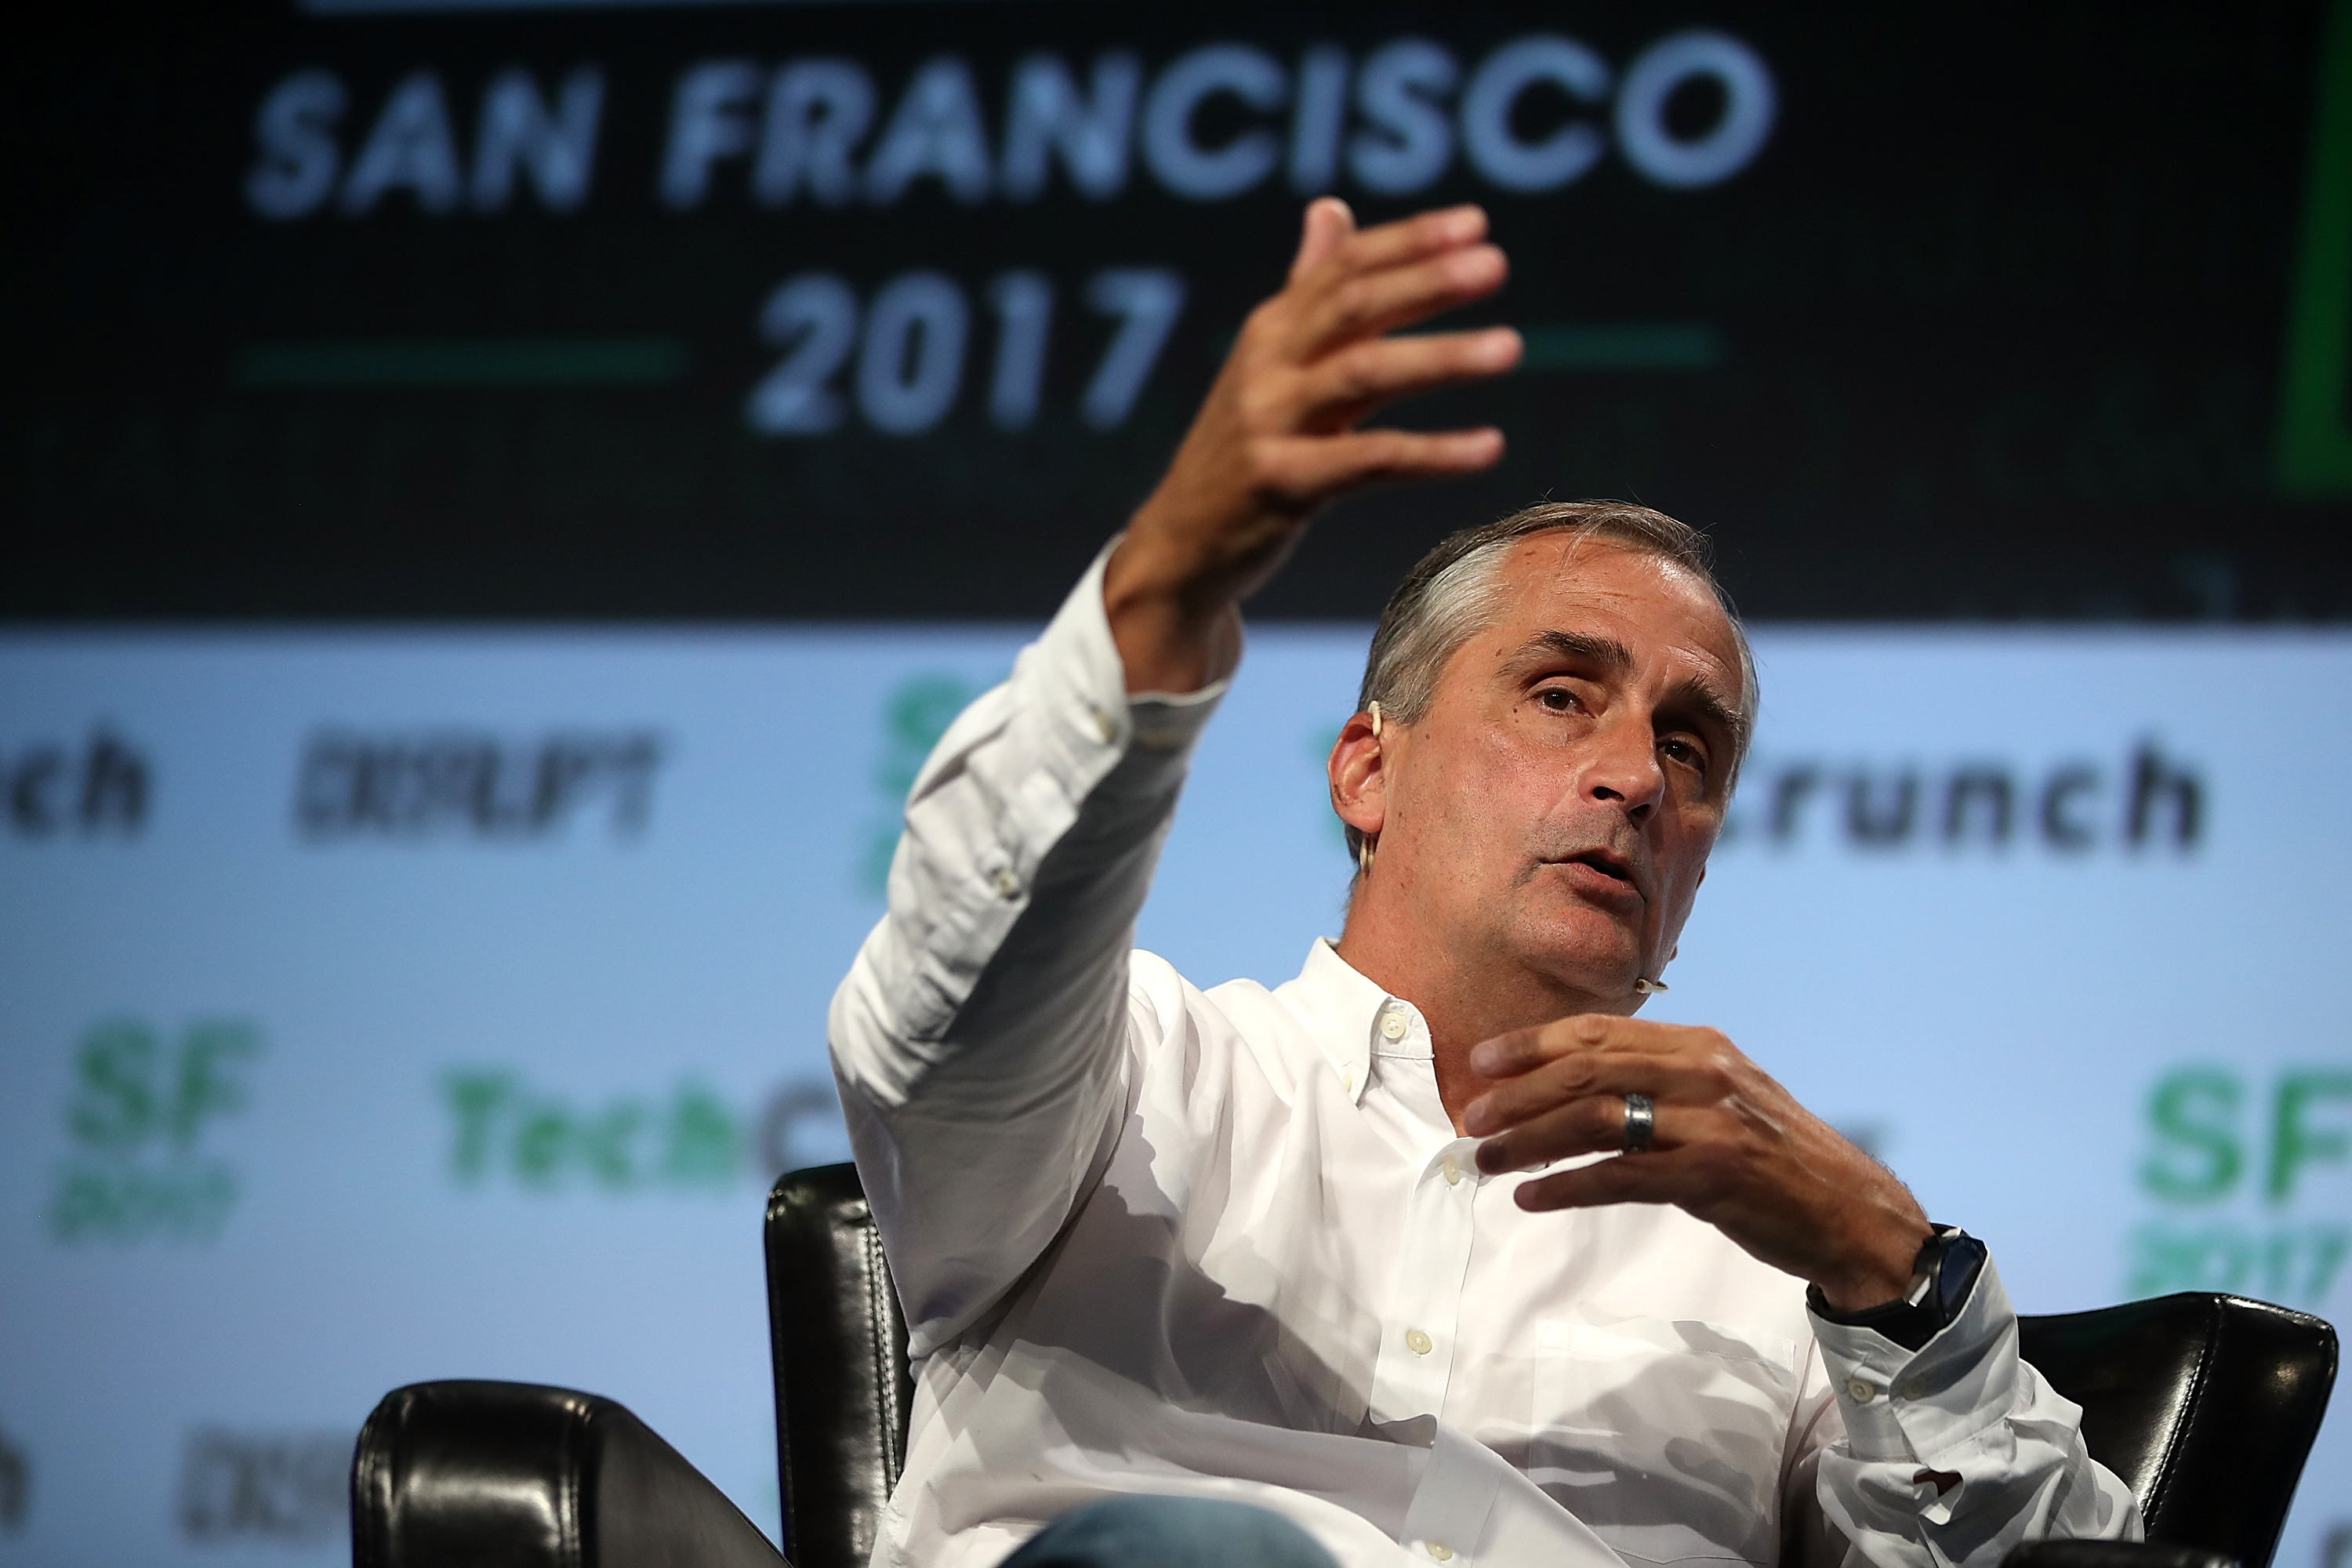 Technology Leaders And Innovators Attend Tech Crunch Disrupt Conference